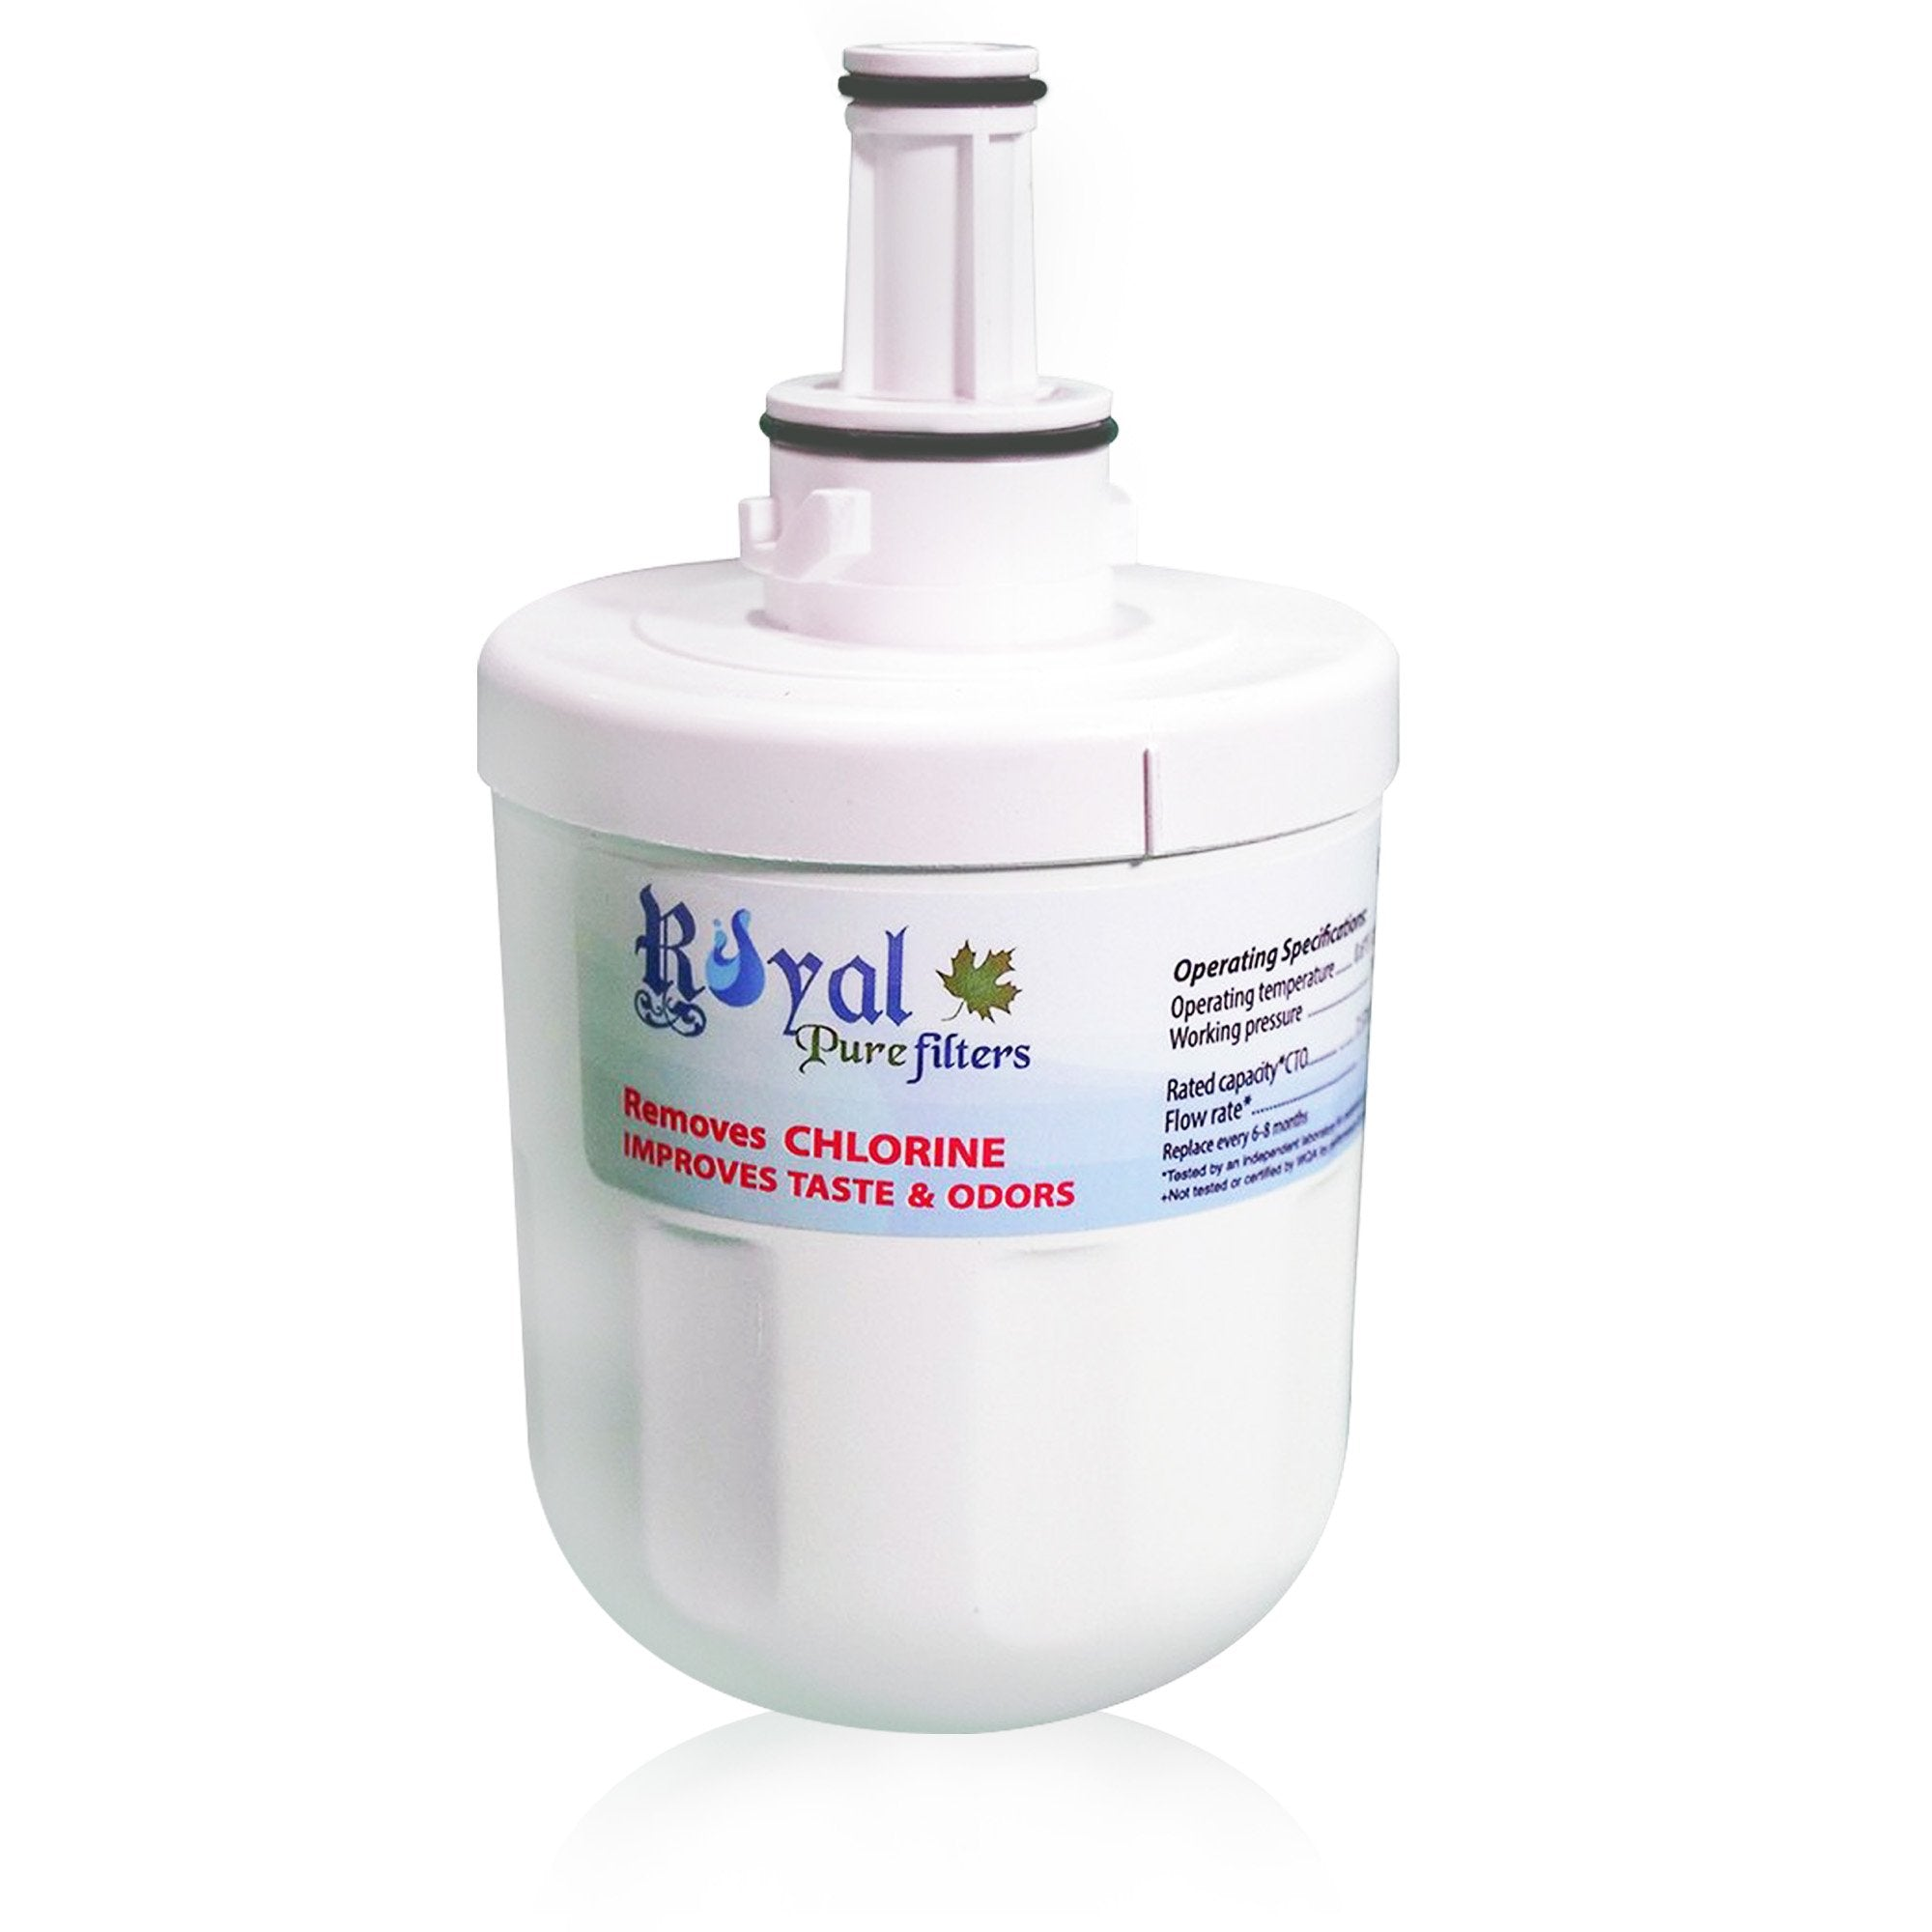 EveryDrop EDR6D1, Whirlpool 4396701/6701 & Kenmore 46-9915 Compatible CTO Refrigerator Water Filter